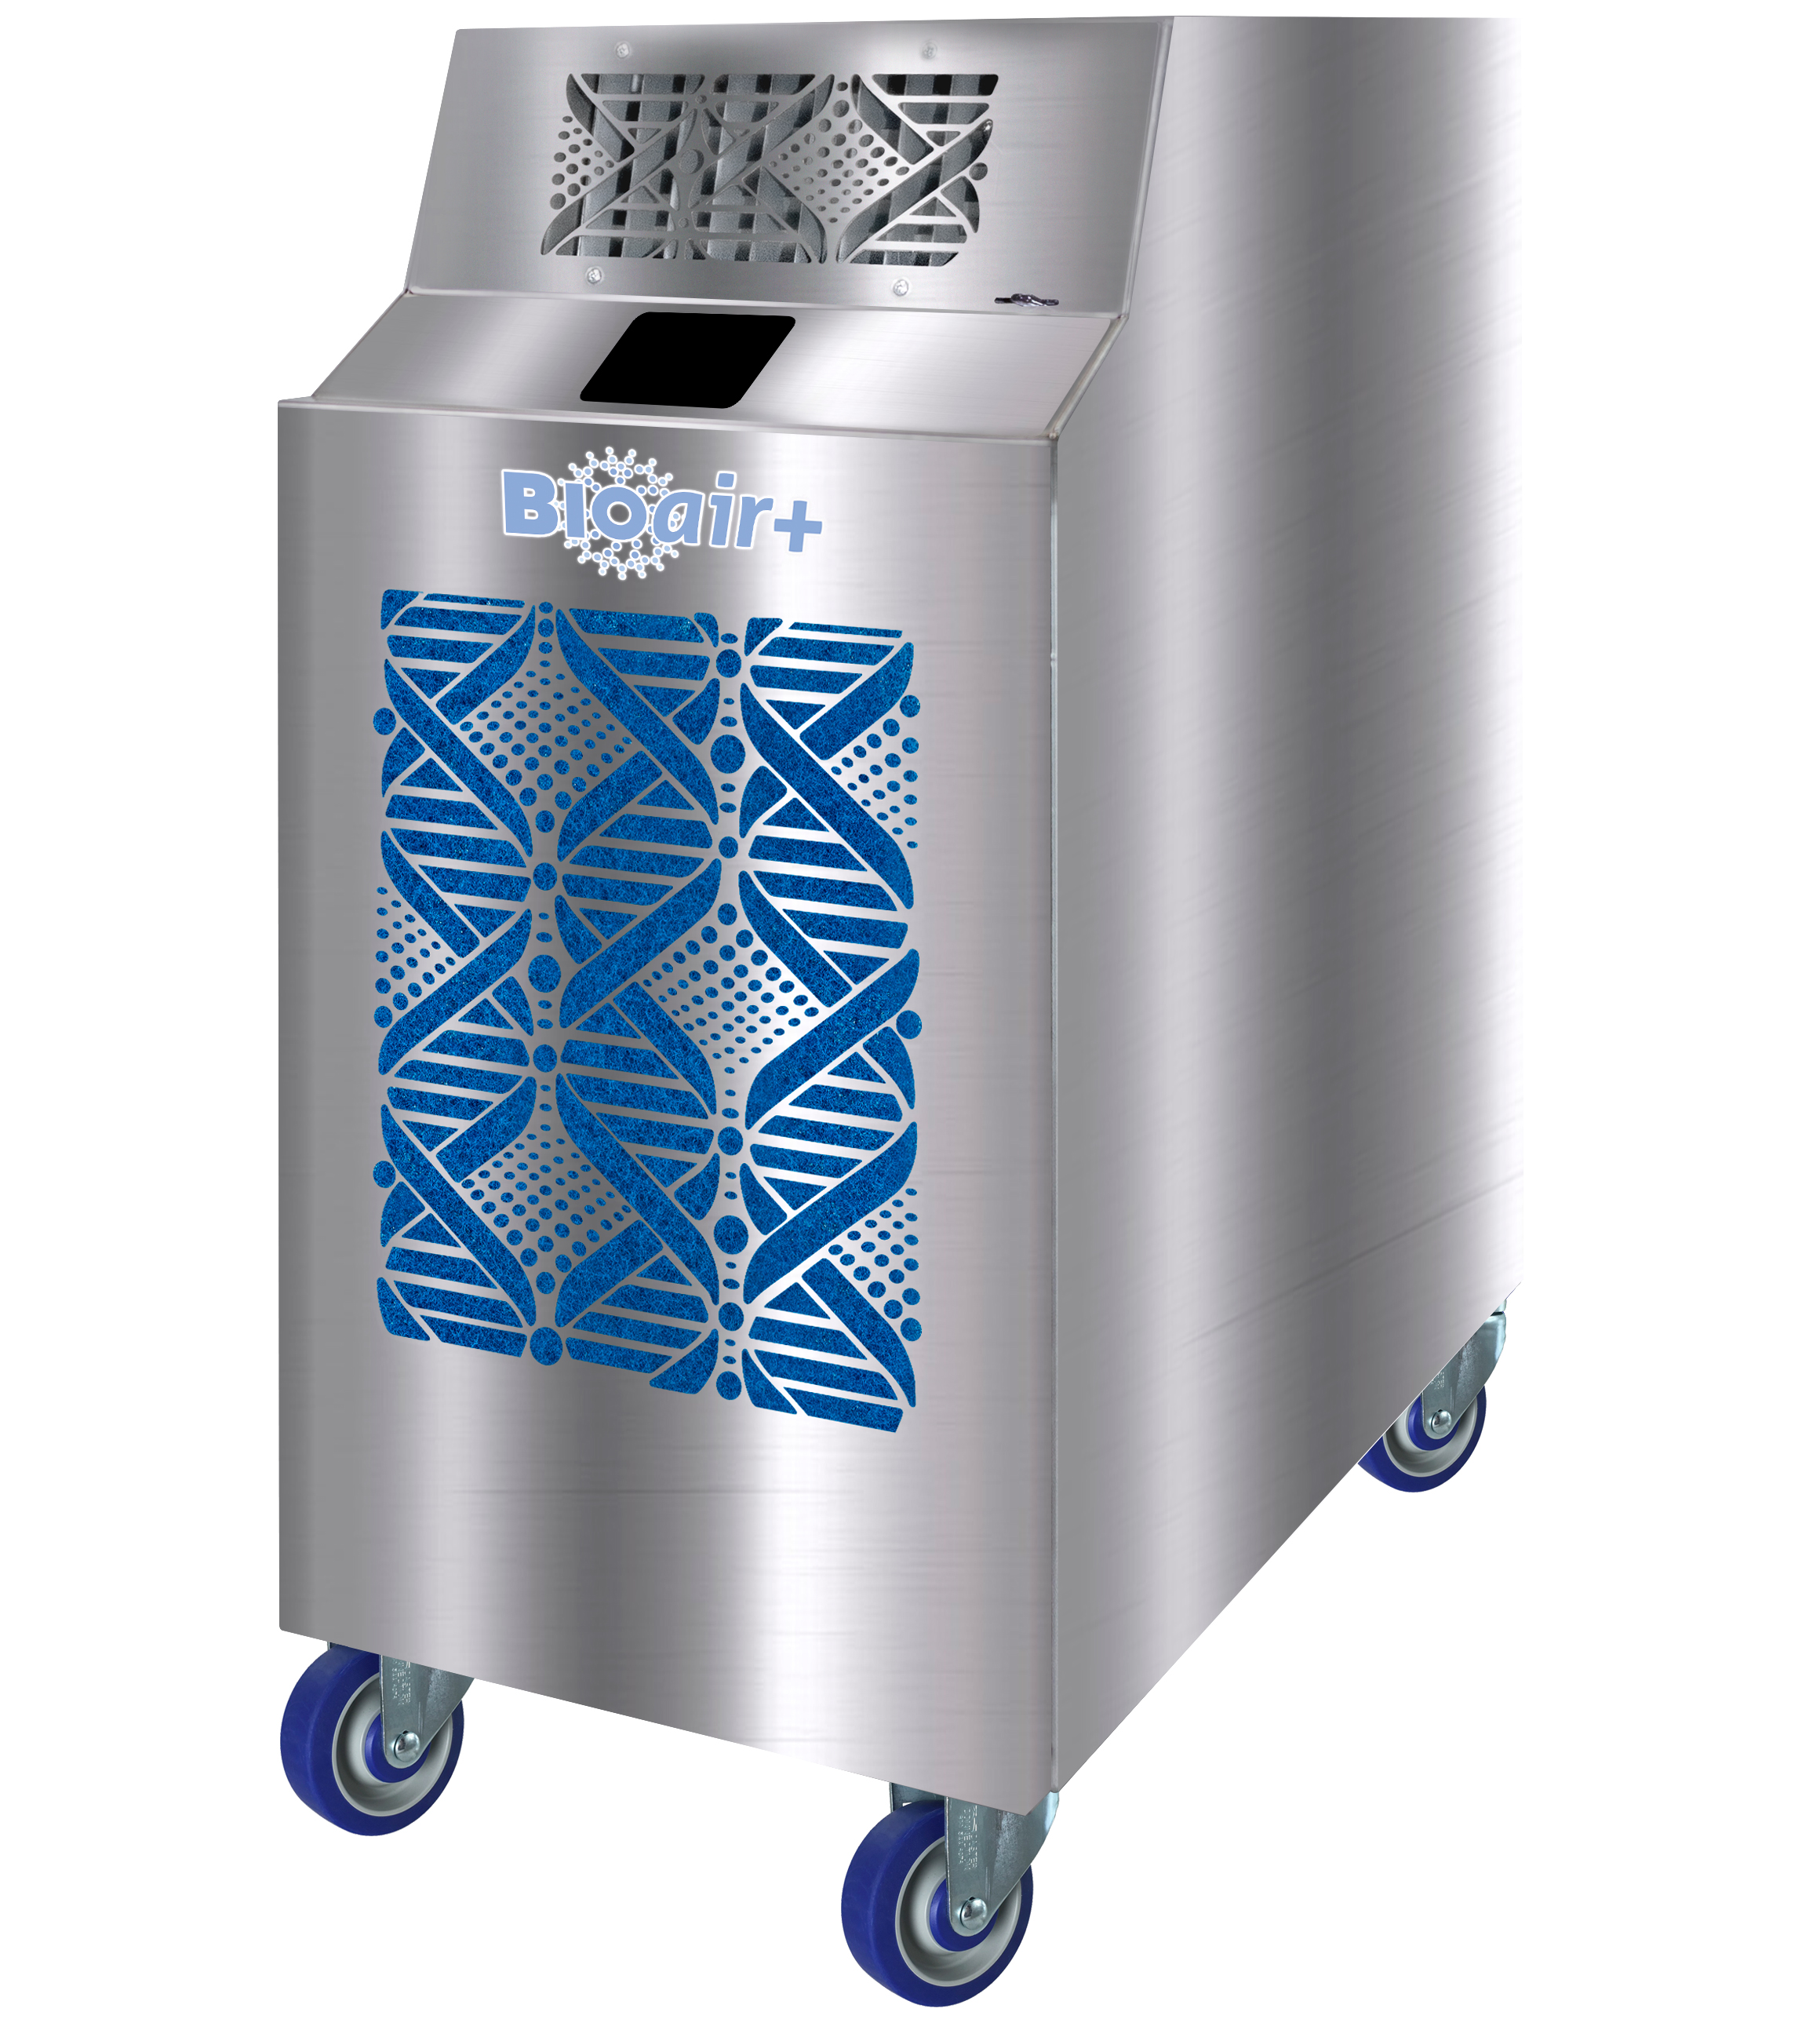 Kwikool KBP1000 Combination Air Scrubber / Negative Air Machine with HEPA Filtration and UV Protection